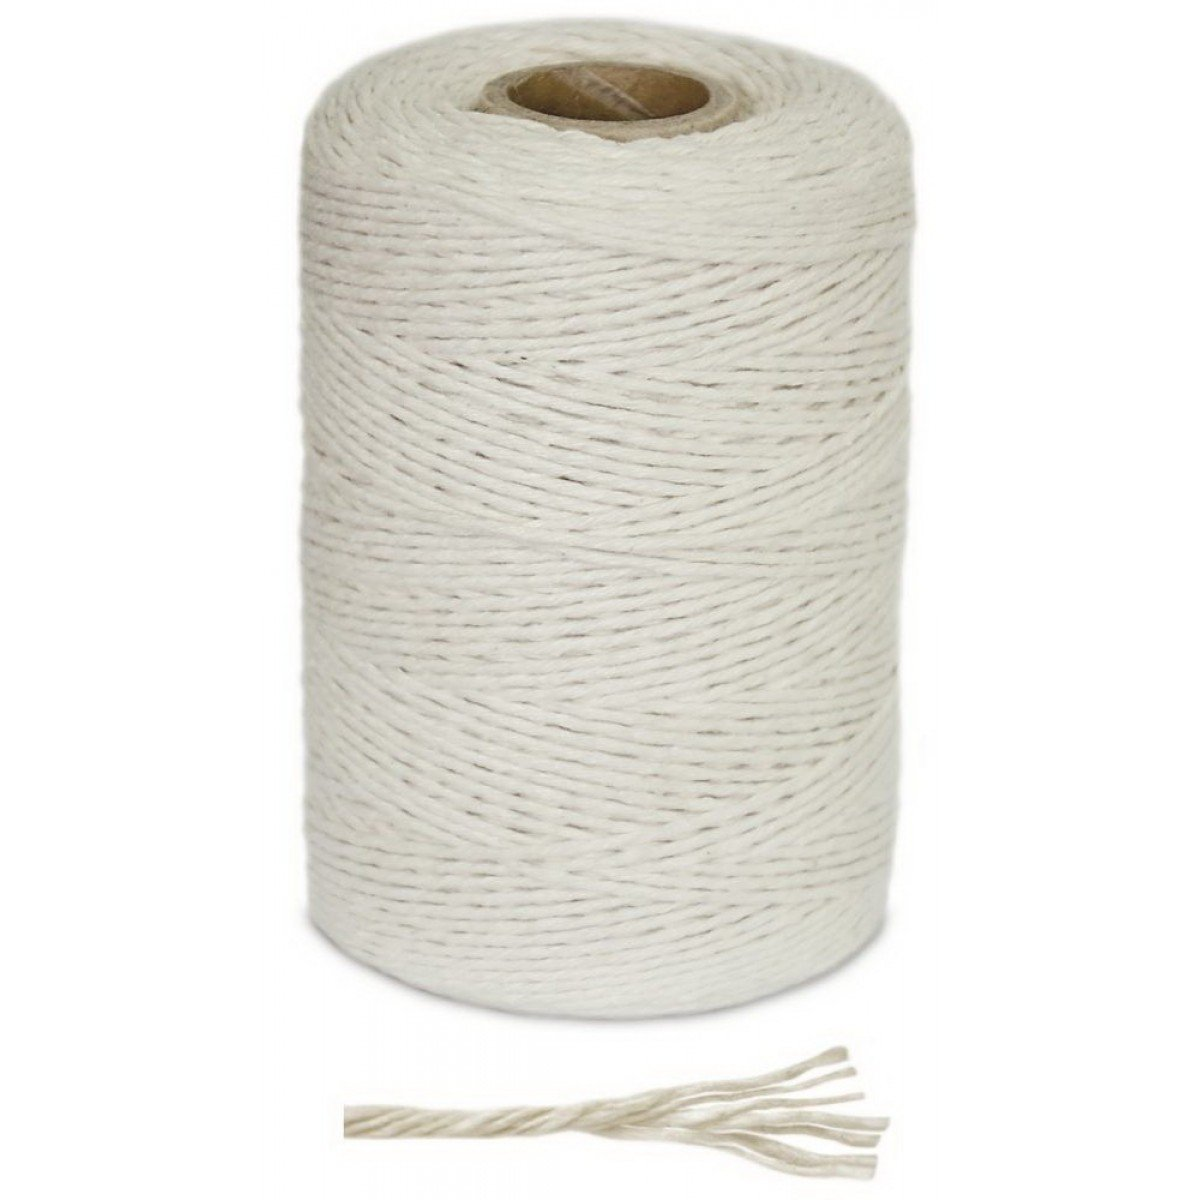 OT fiber 1320 Ft Best Kitchen Cotton Twine Food Safe Cooking String Perfect for Trussing and Tying Poultry Meat Making Sausage DIY Crafts and Decoration